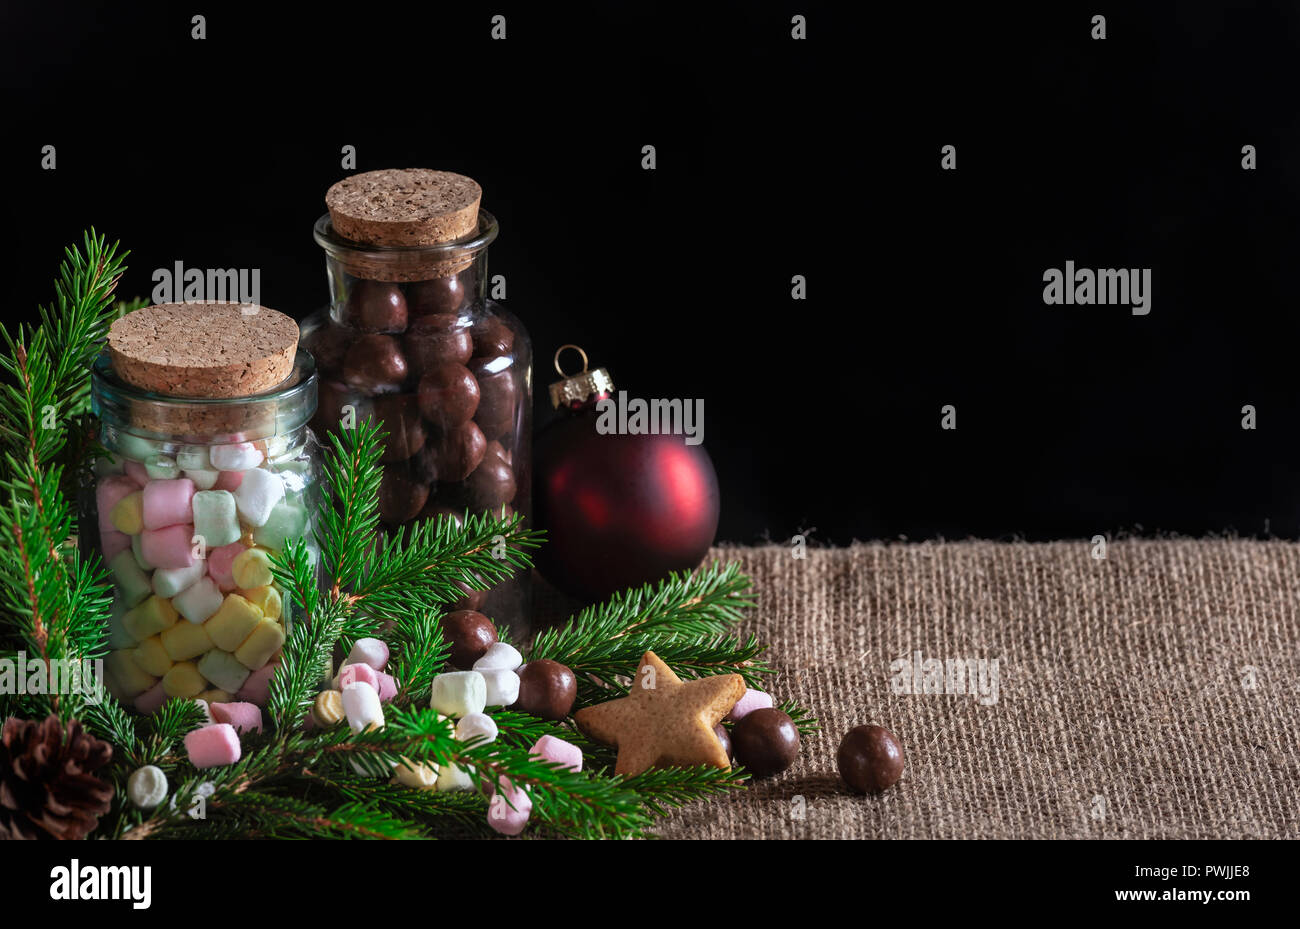 christmas treats banner with bottles full of multi colored mini marshmallows and chocolate candies green fir twigs and xmas ball on jute fabric